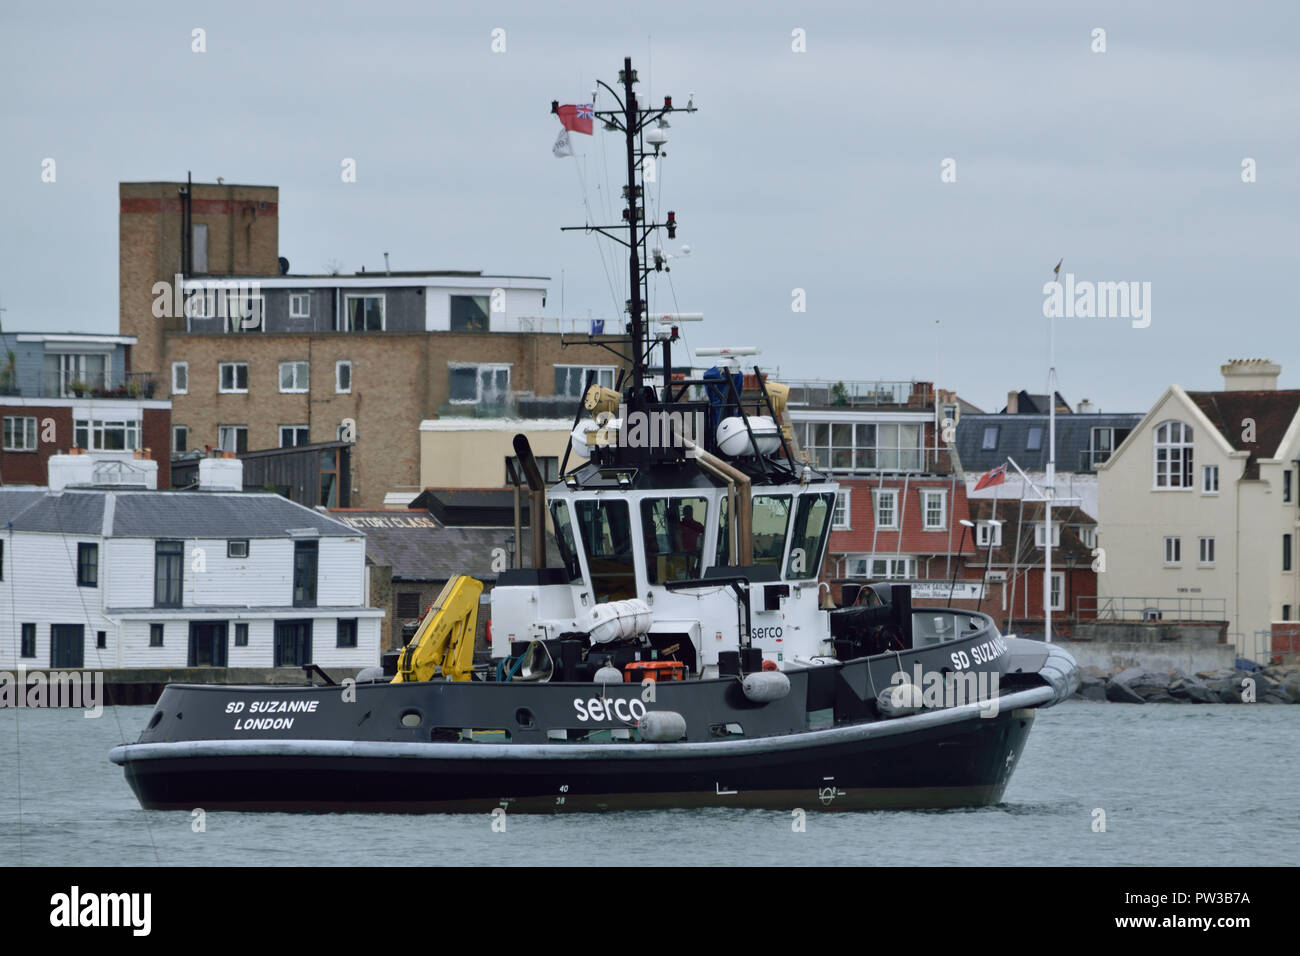 Serco Marine Services tug operating in Portsmouth Harbour - Stock Image